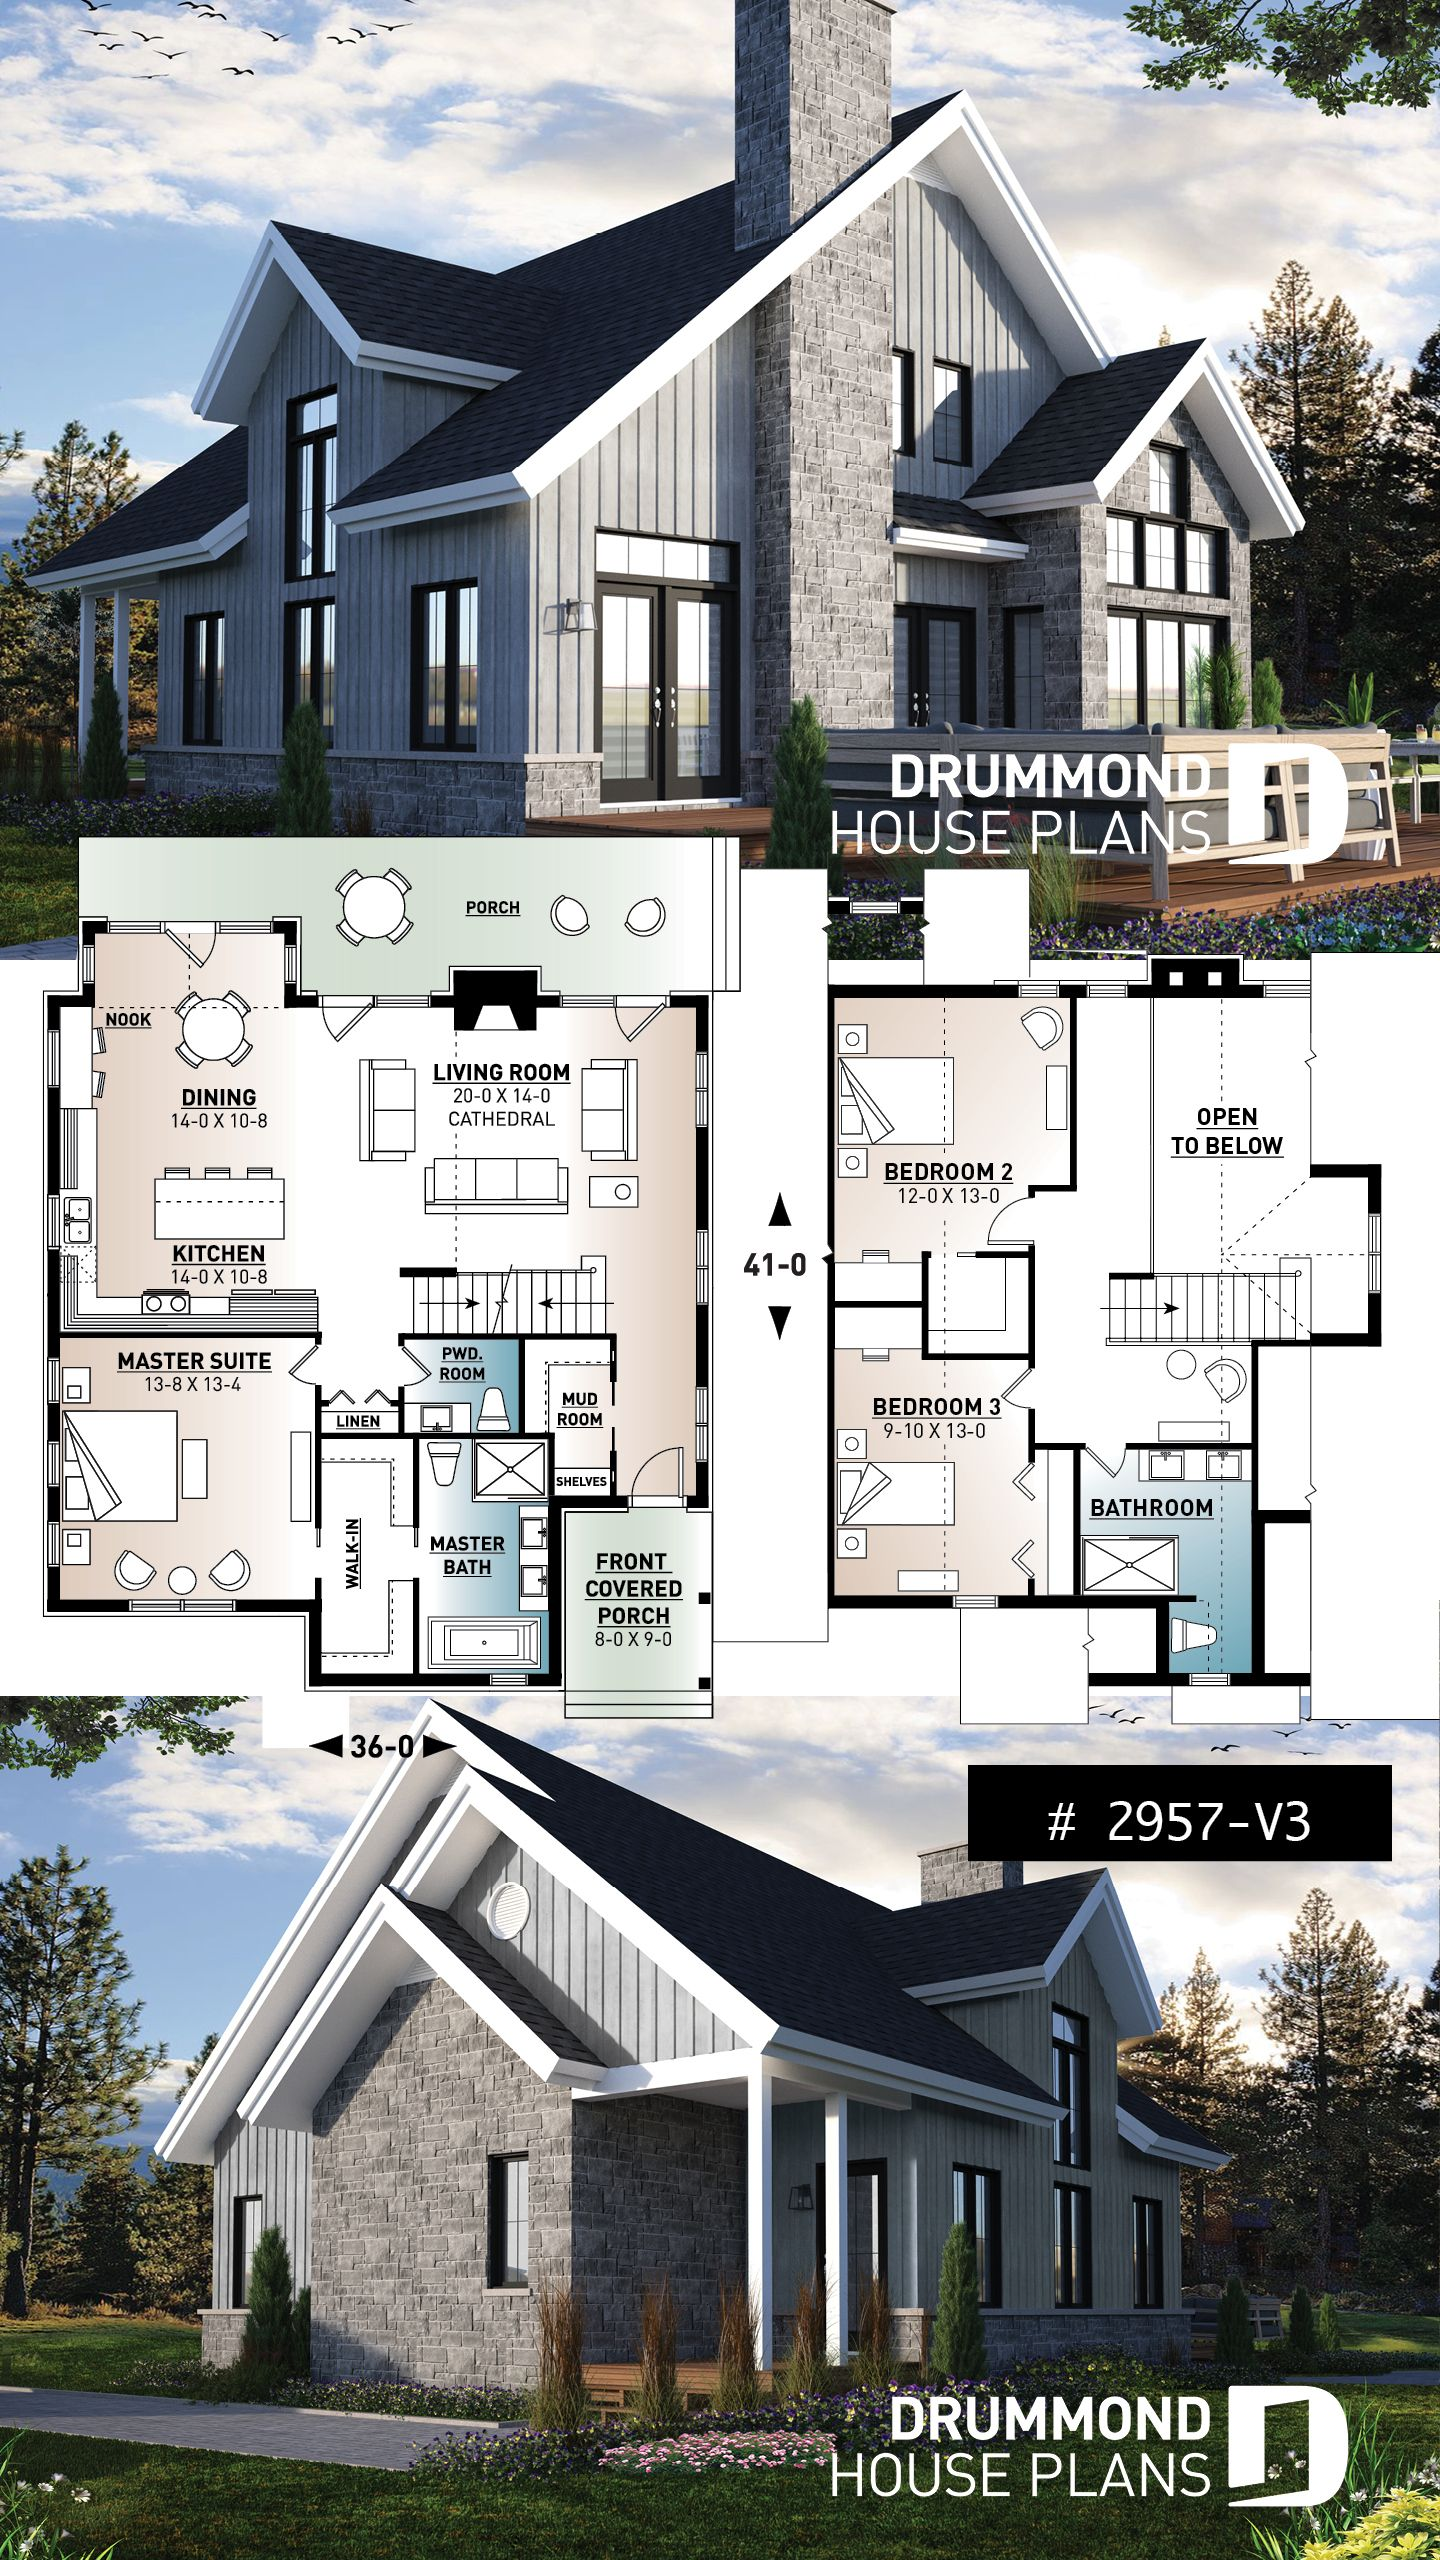 Discover The Plan 2957 V3 The Touchstone 3 Which Will Please You For Its 3 Bedrooms And For Its Cottage Chalet Cabin Styles Modern Farmhouse Floorplan Farmhouse Floor Plans Sims House Plans